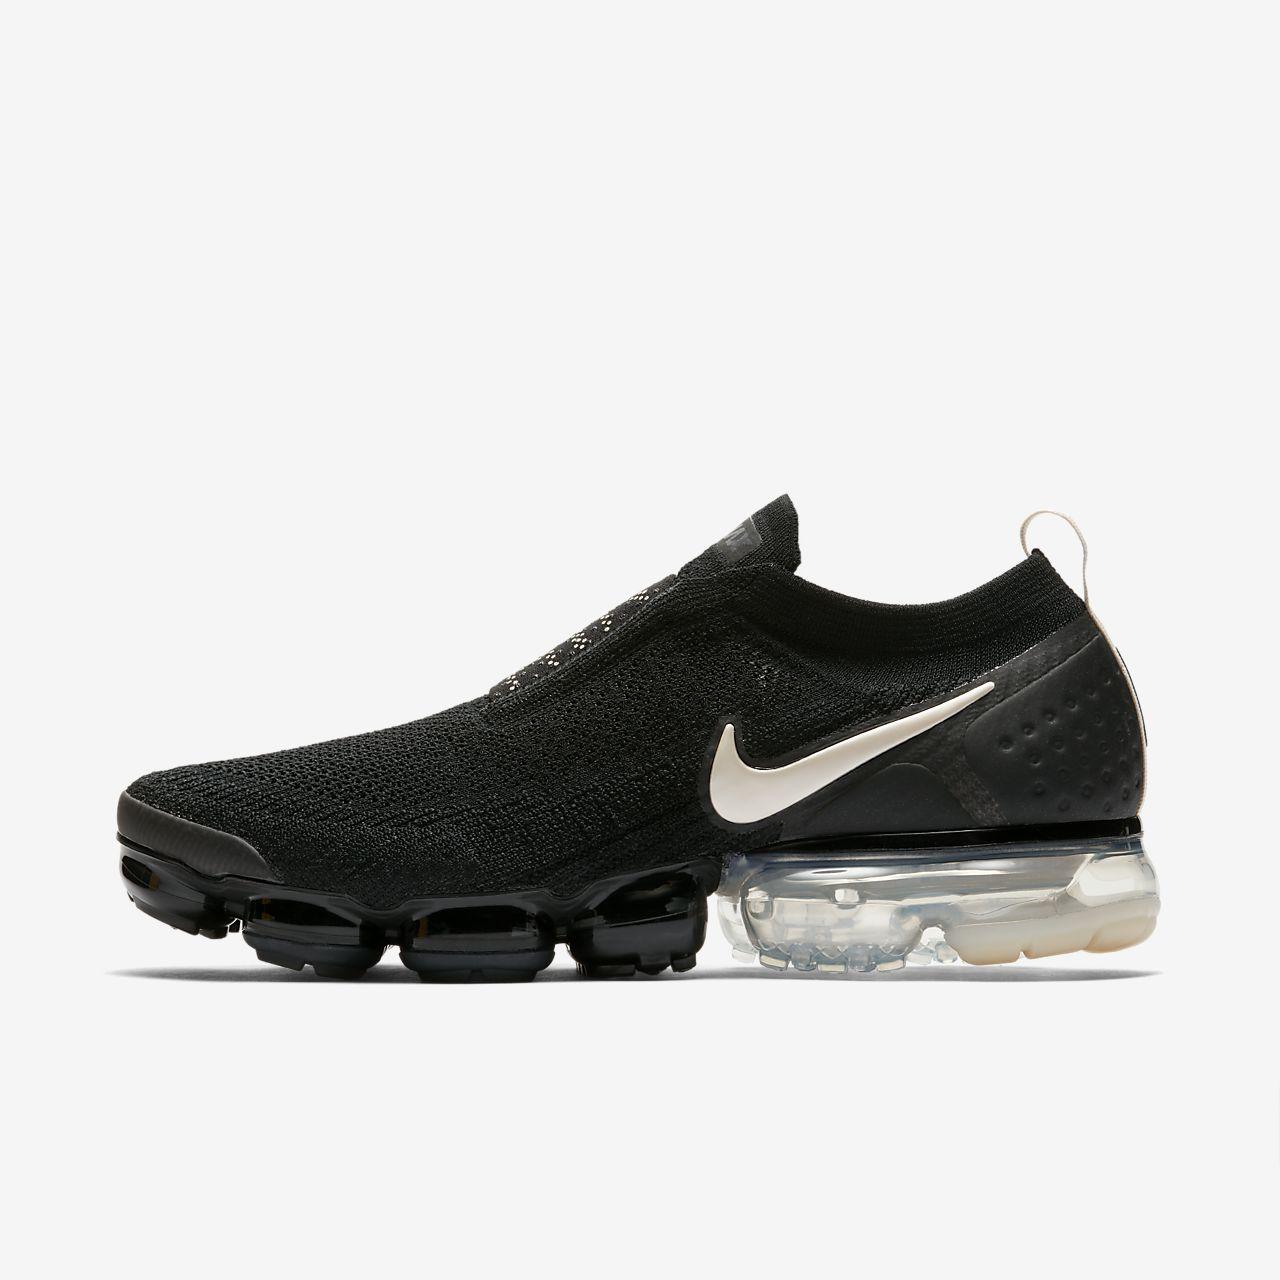 reputable site cb918 589cf Nike Air VaporMax Flyknit Moc 2